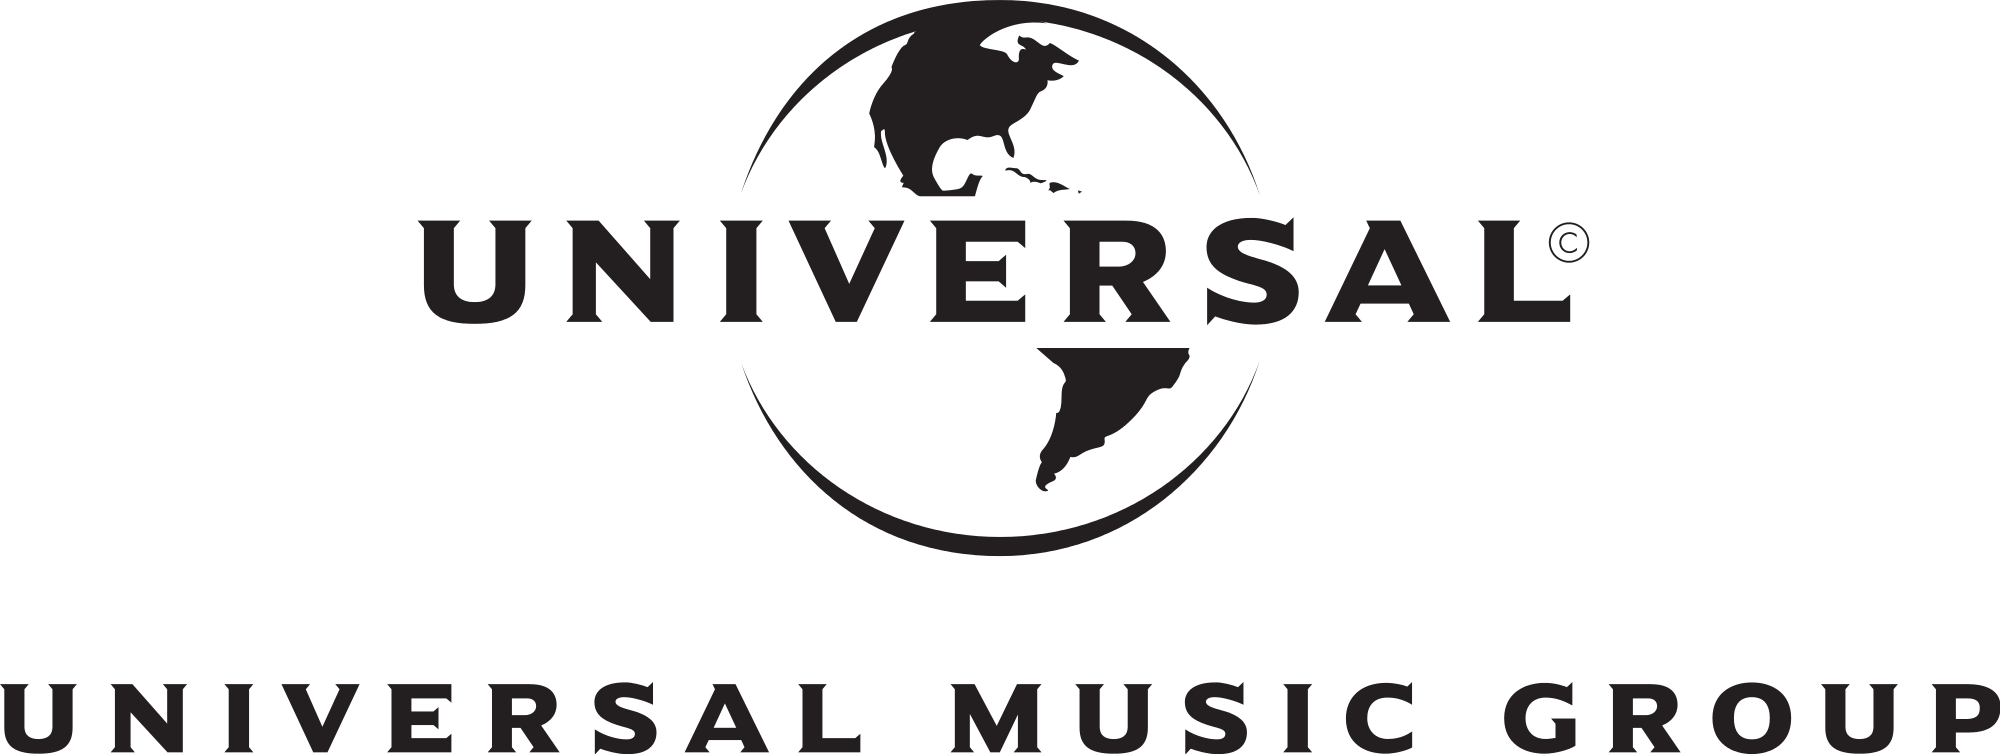 2000px-Universal_Music_Group_svg.png